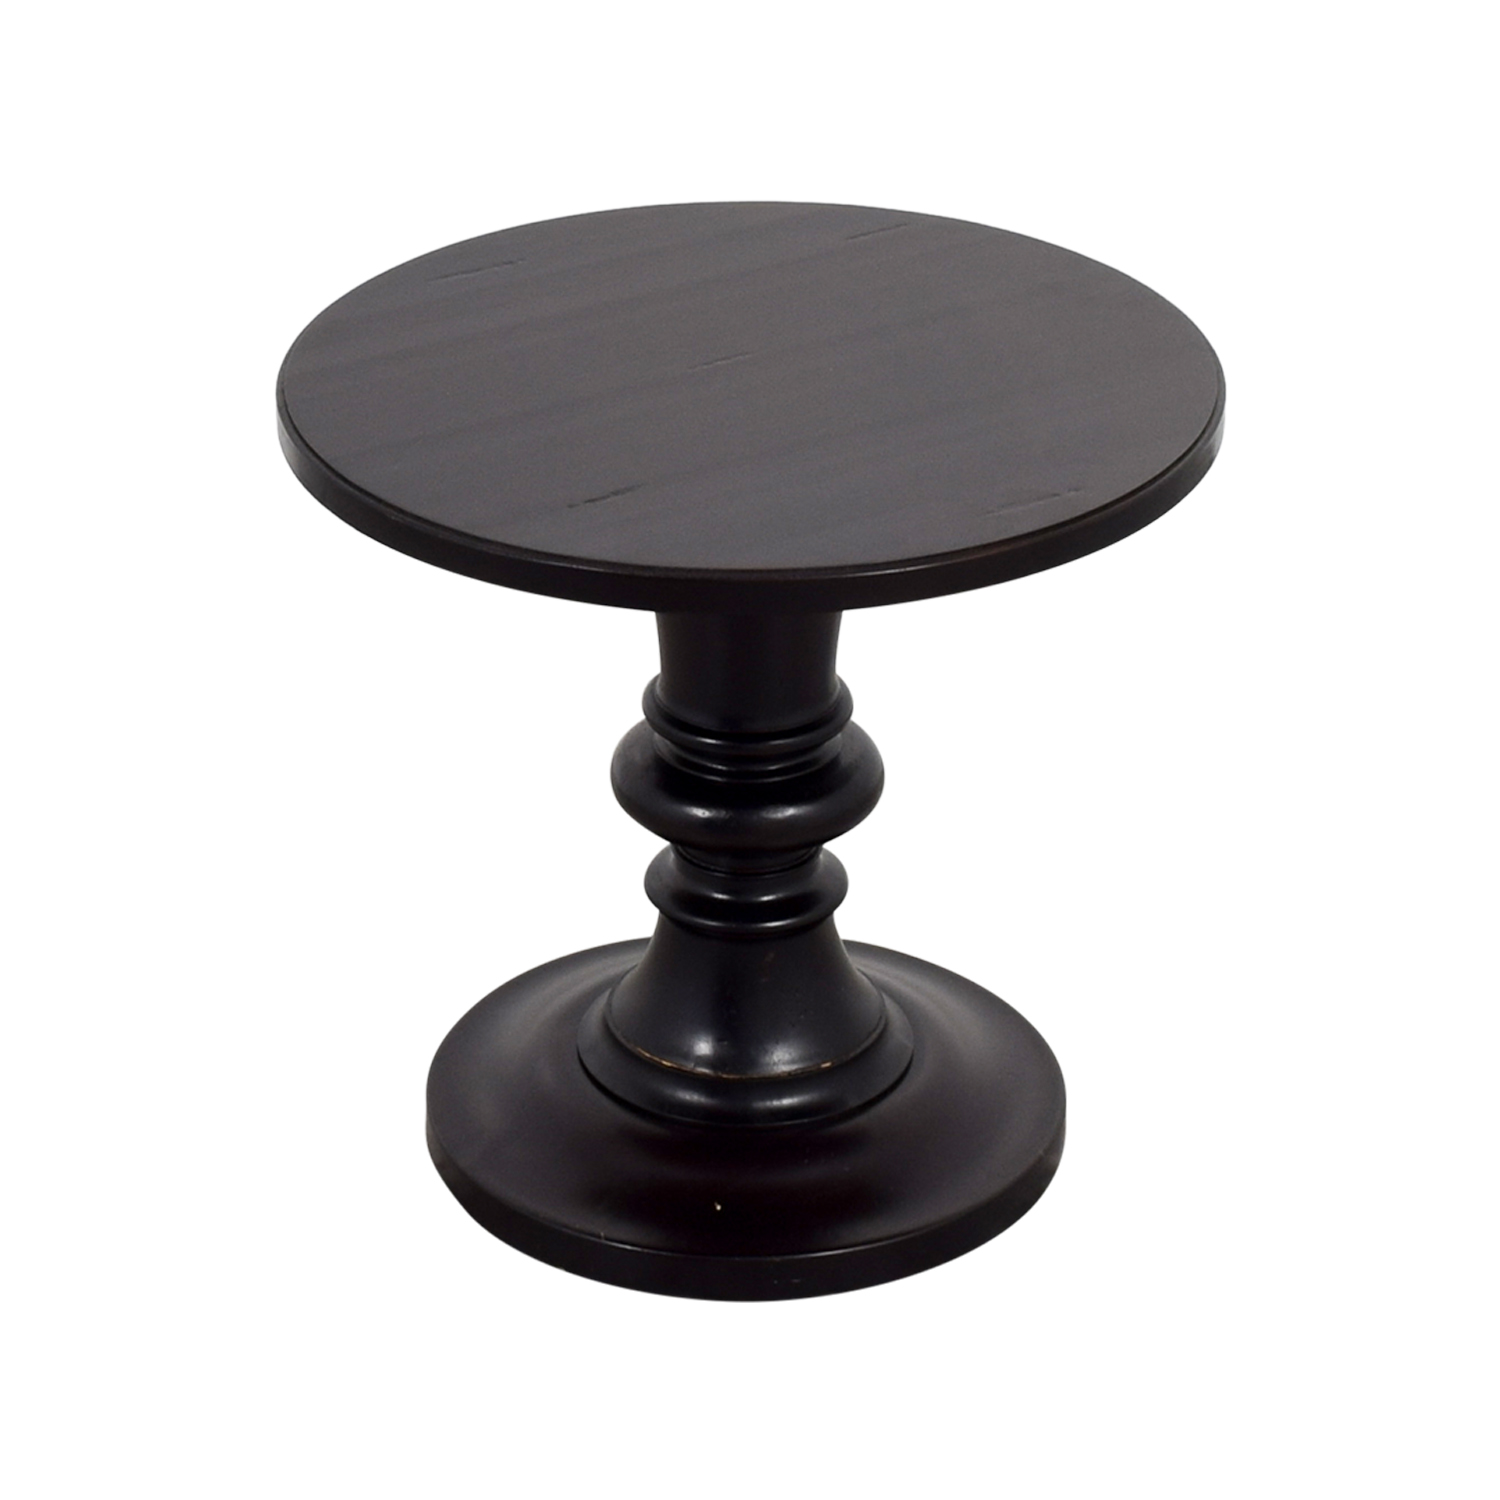 stein world accent tables round pedestal table value city within off pottery barn rustic plan white narrow end and lamp wall decor acrylic entry garden supplies base unicorn black